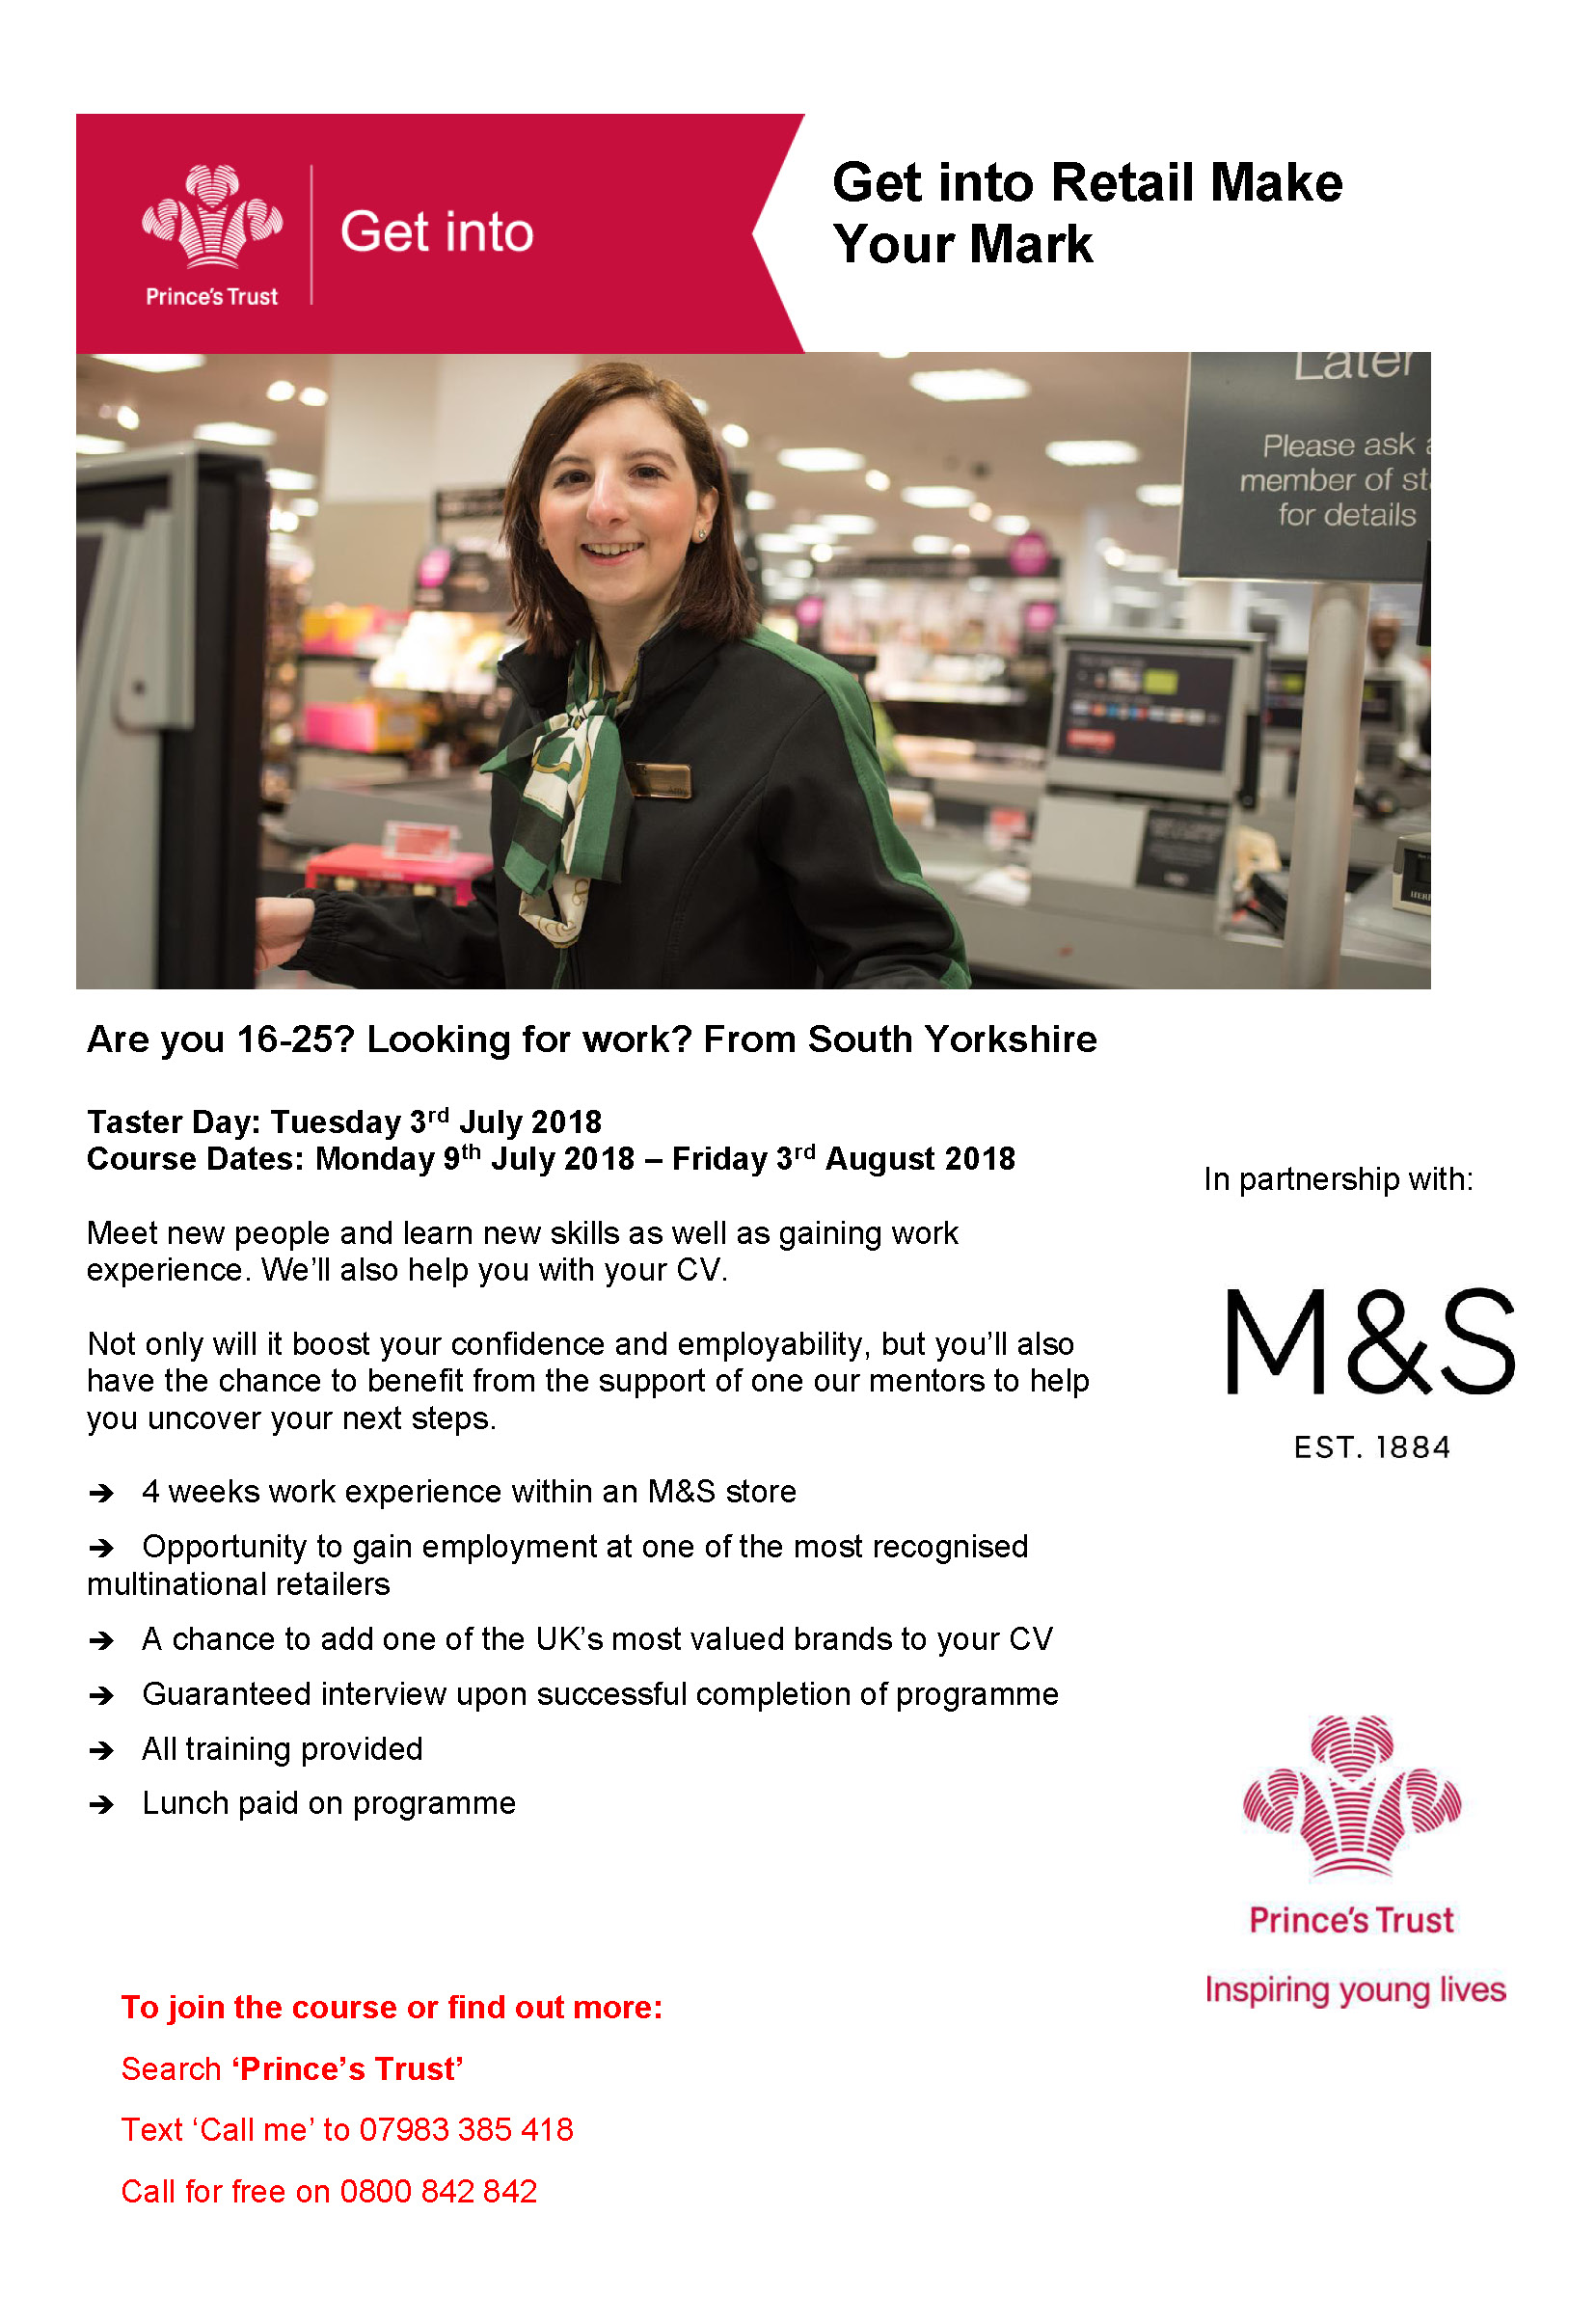 Get Into Retail with M&S - Voluntary Action Rotherham : Voluntary ...